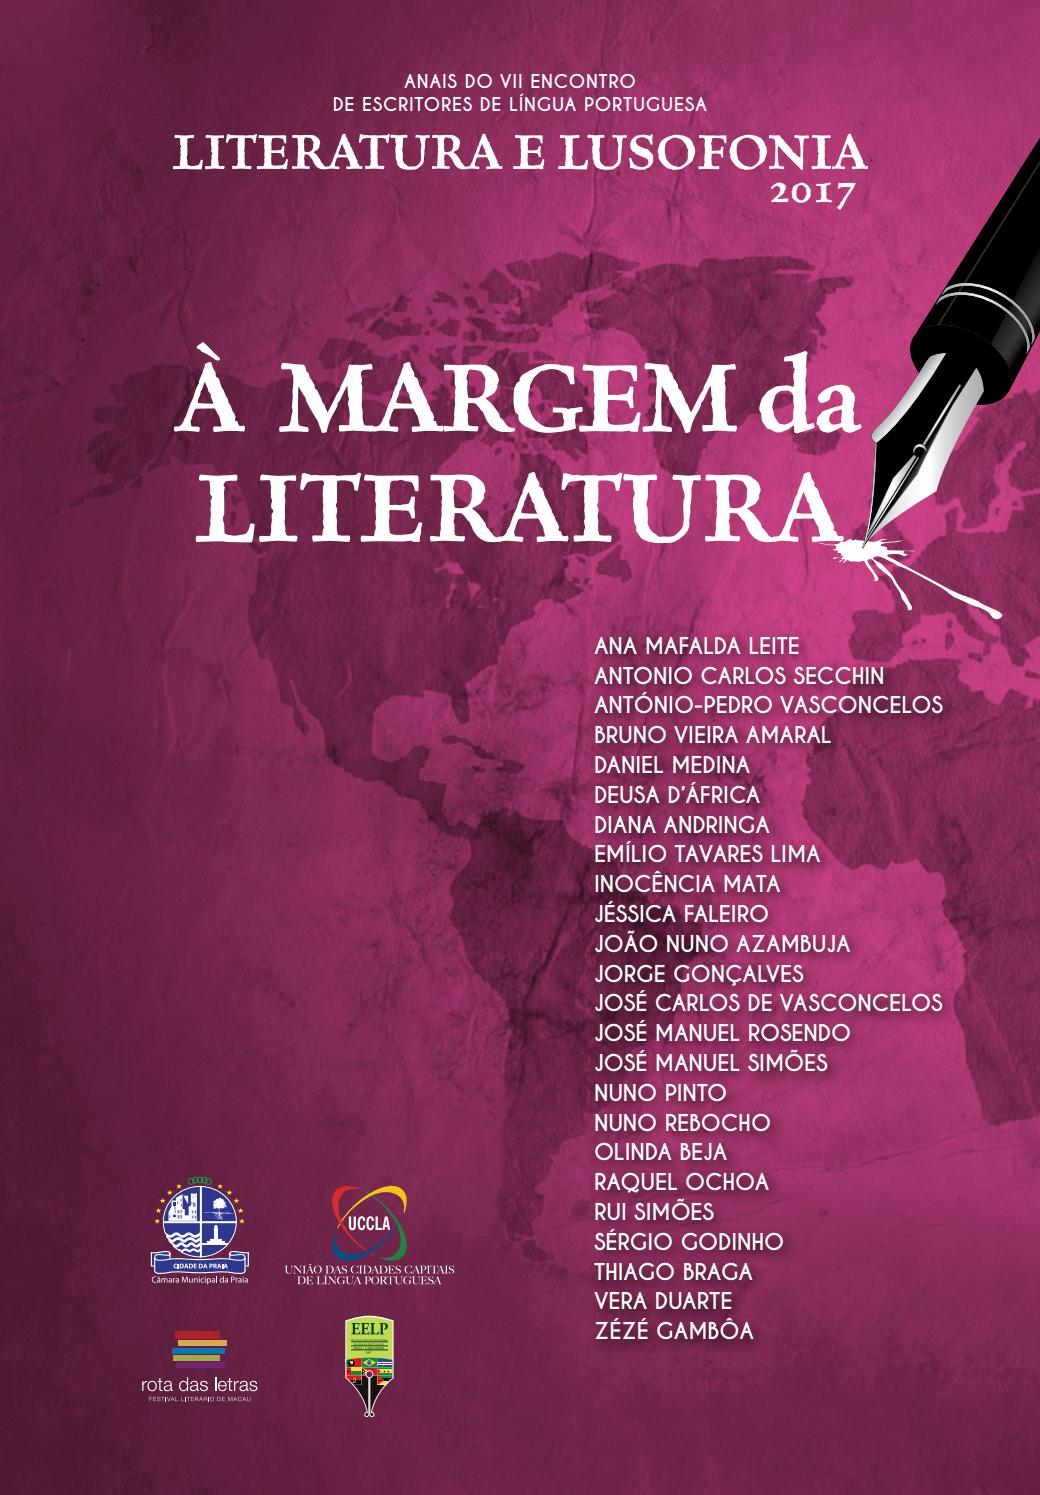 Synonyms and antonyms of rachedo in the Portuguese dictionary of synonyms